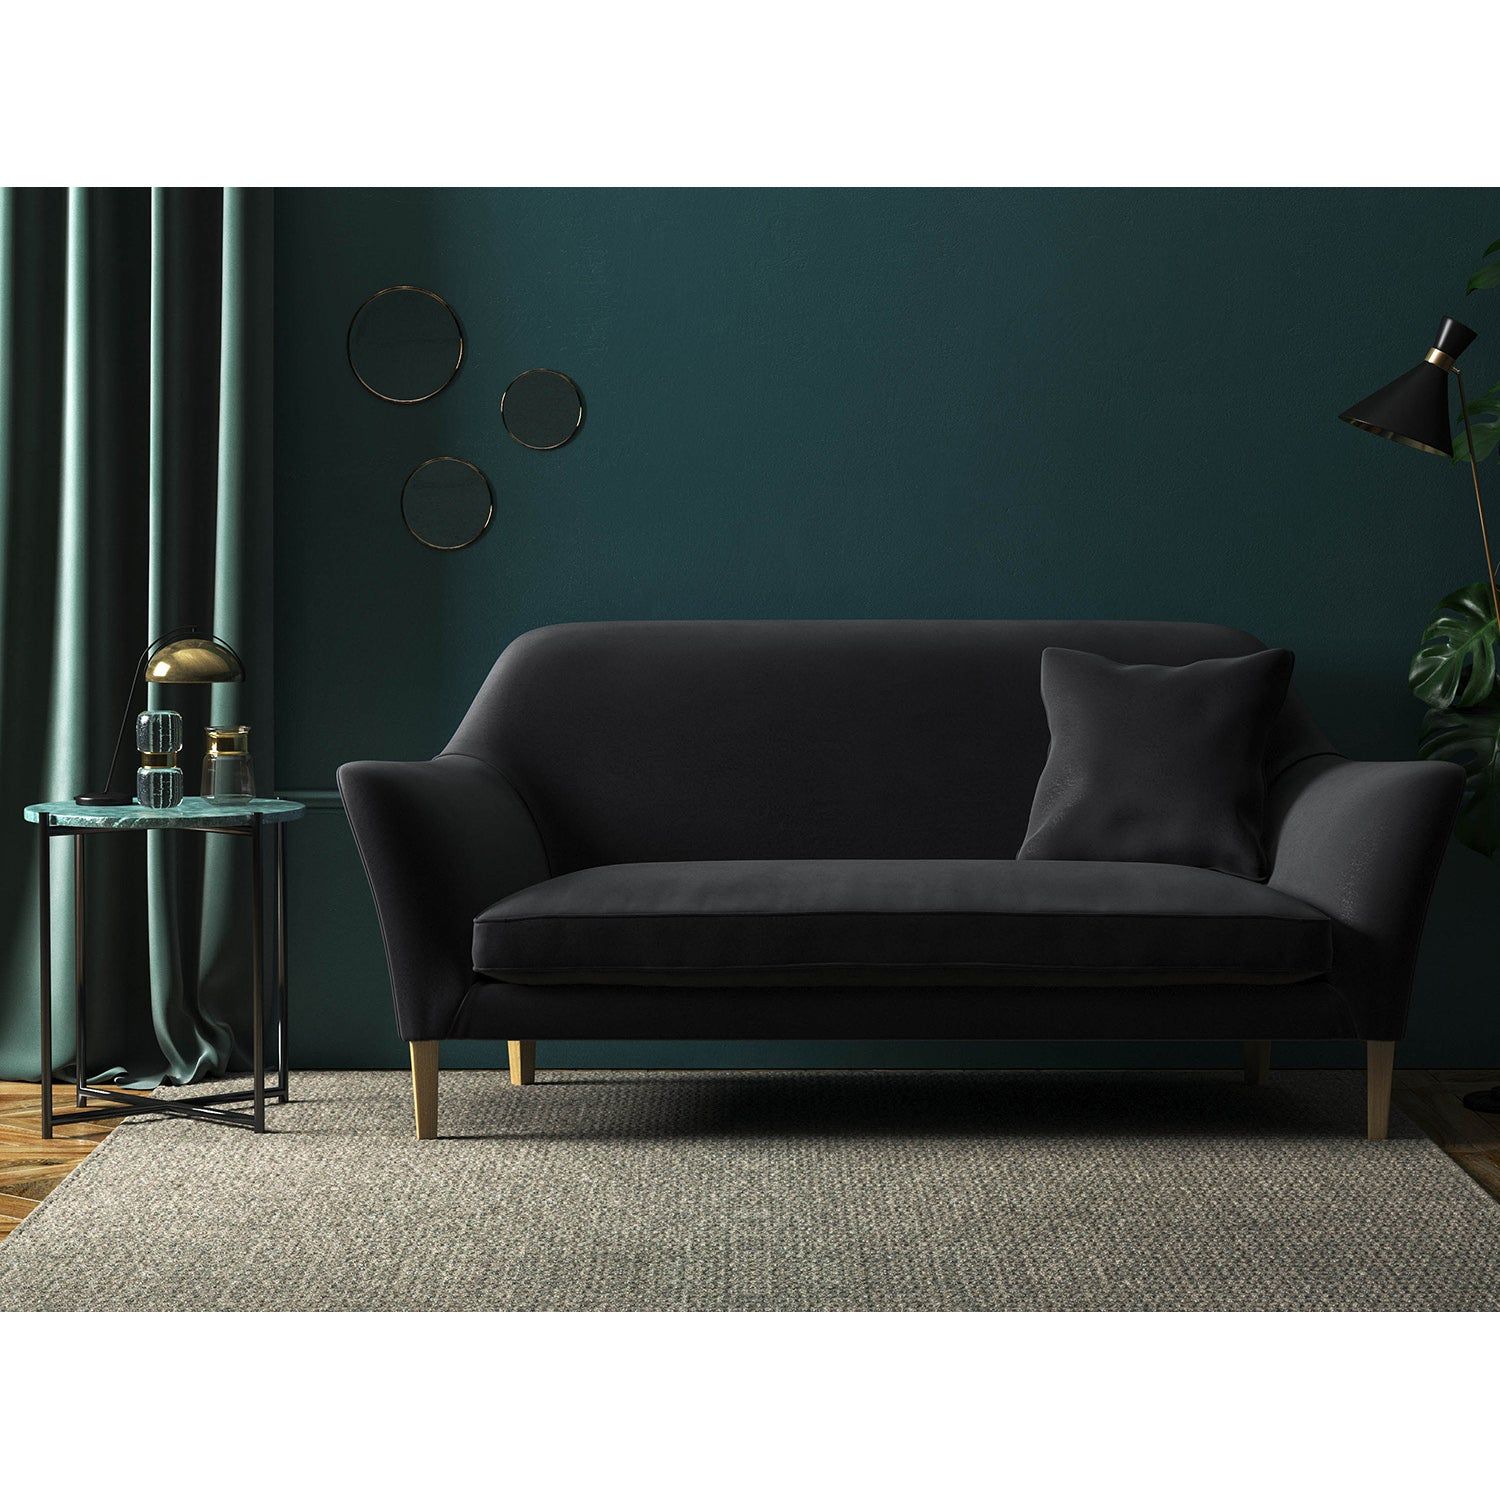 Sofa in a plain black luxury velvet fabric with a stain resistant finish